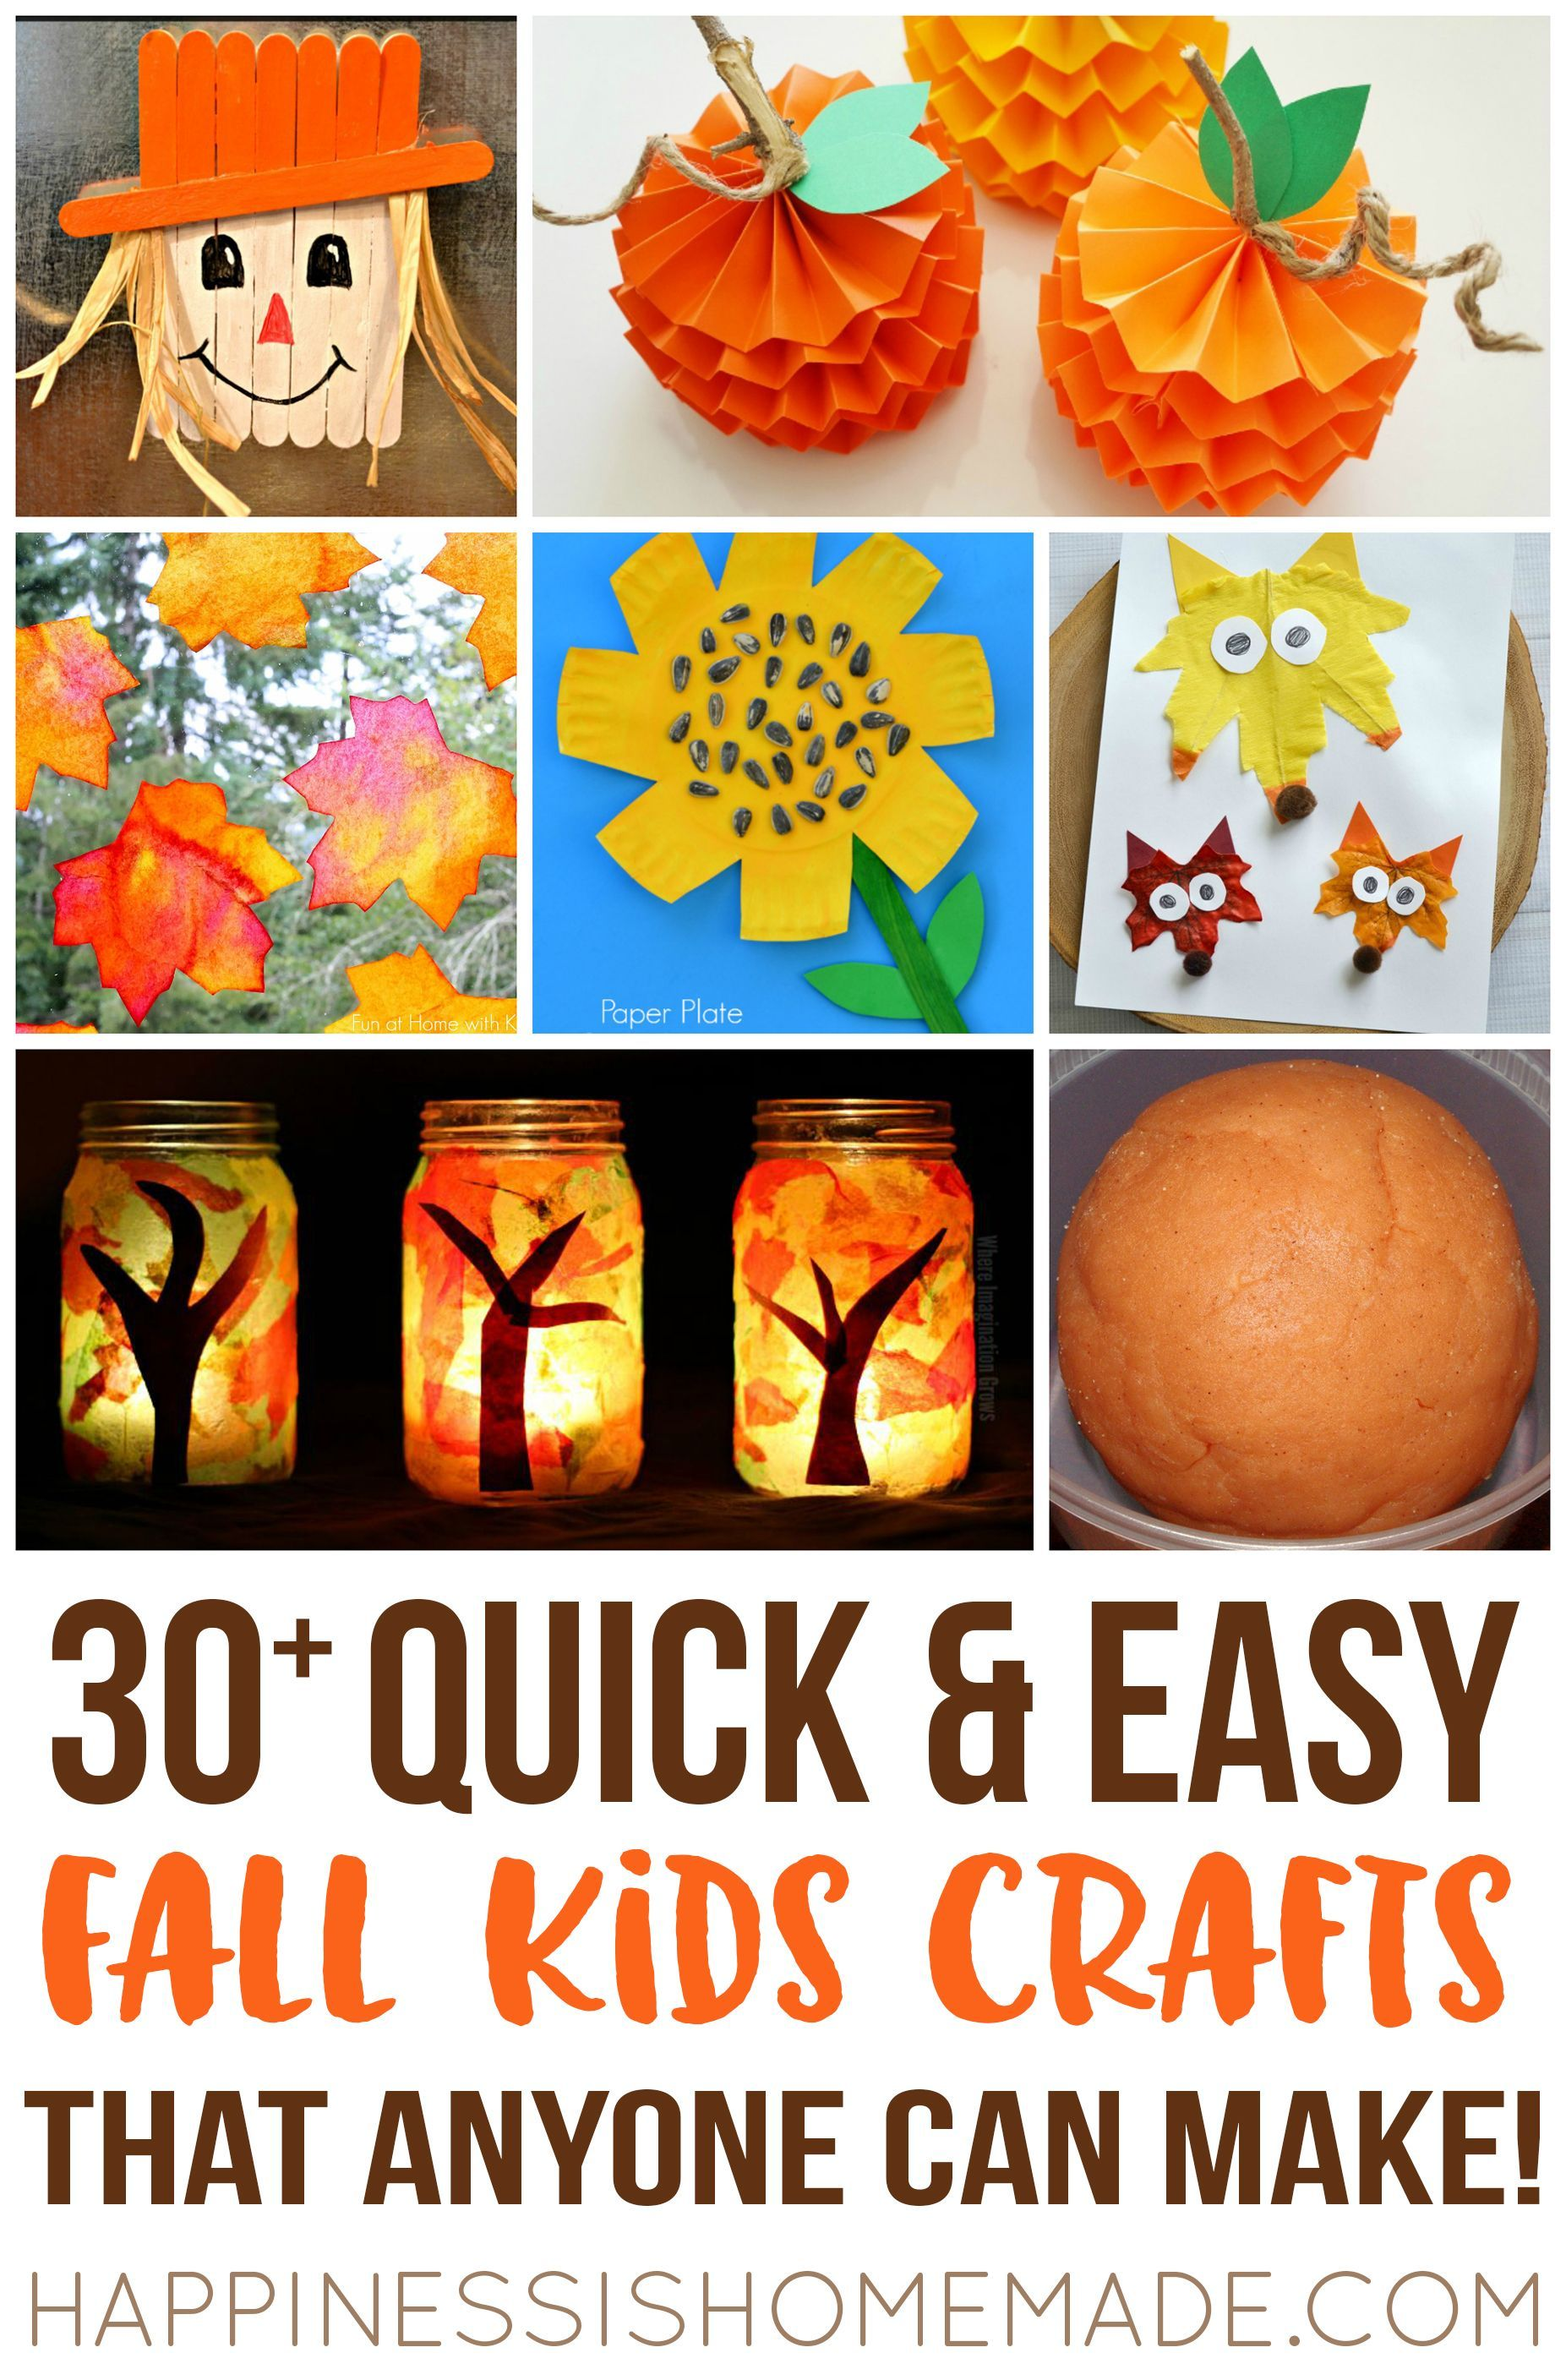 Easy Fall Kids Crafts That Anyone Can Make For